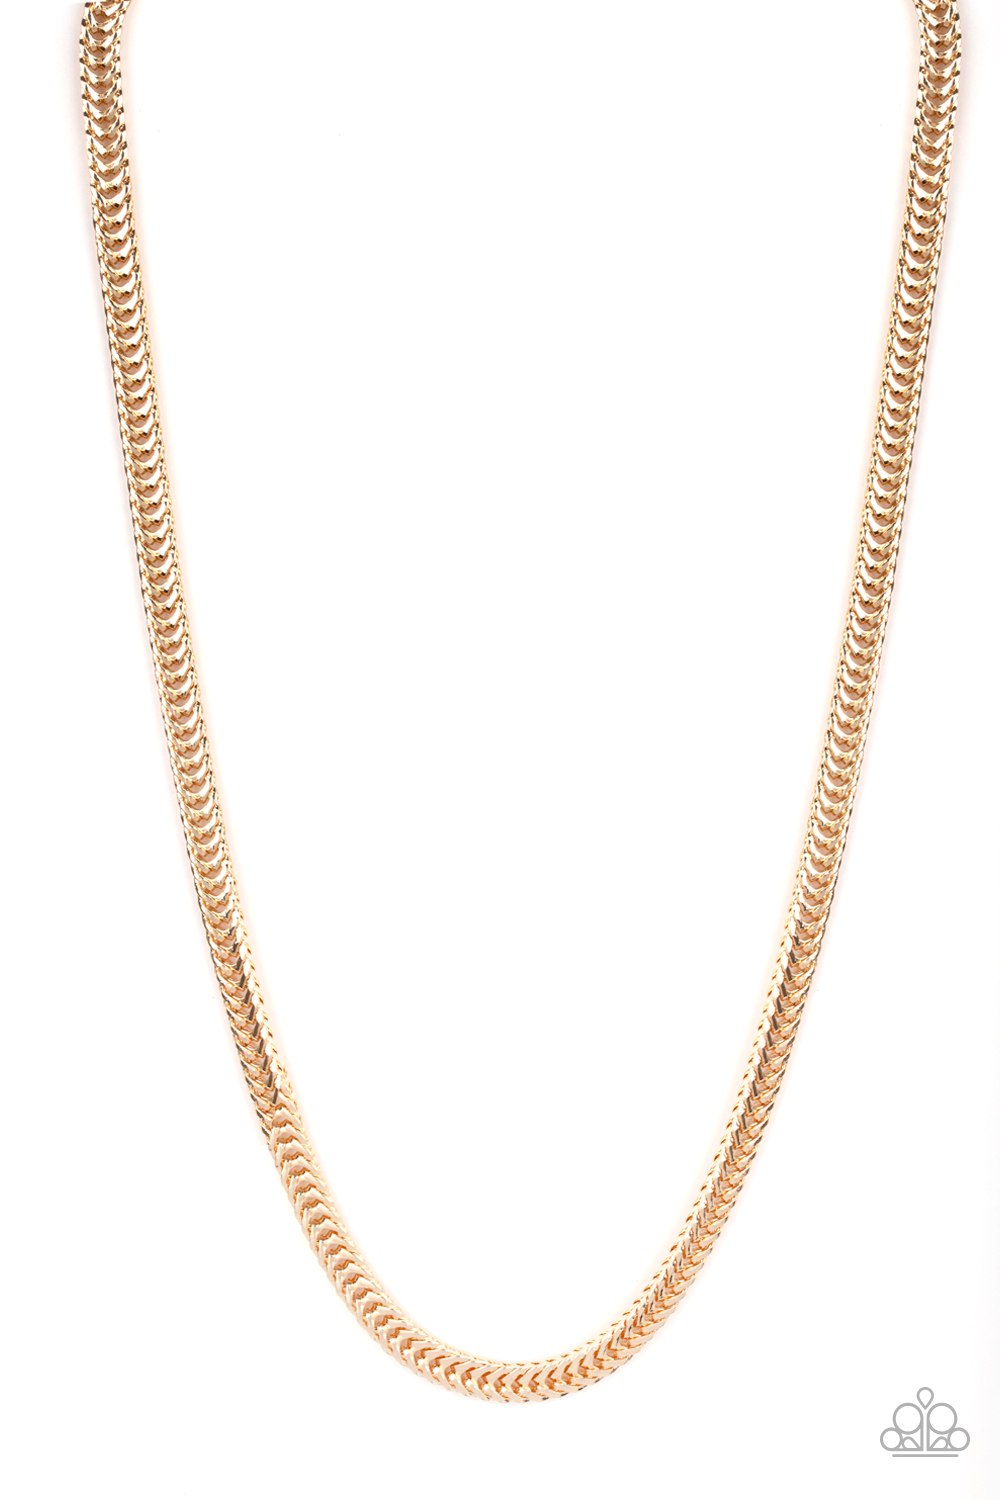 Paparazzi Accessories:  Knockout King - Gold (1531)